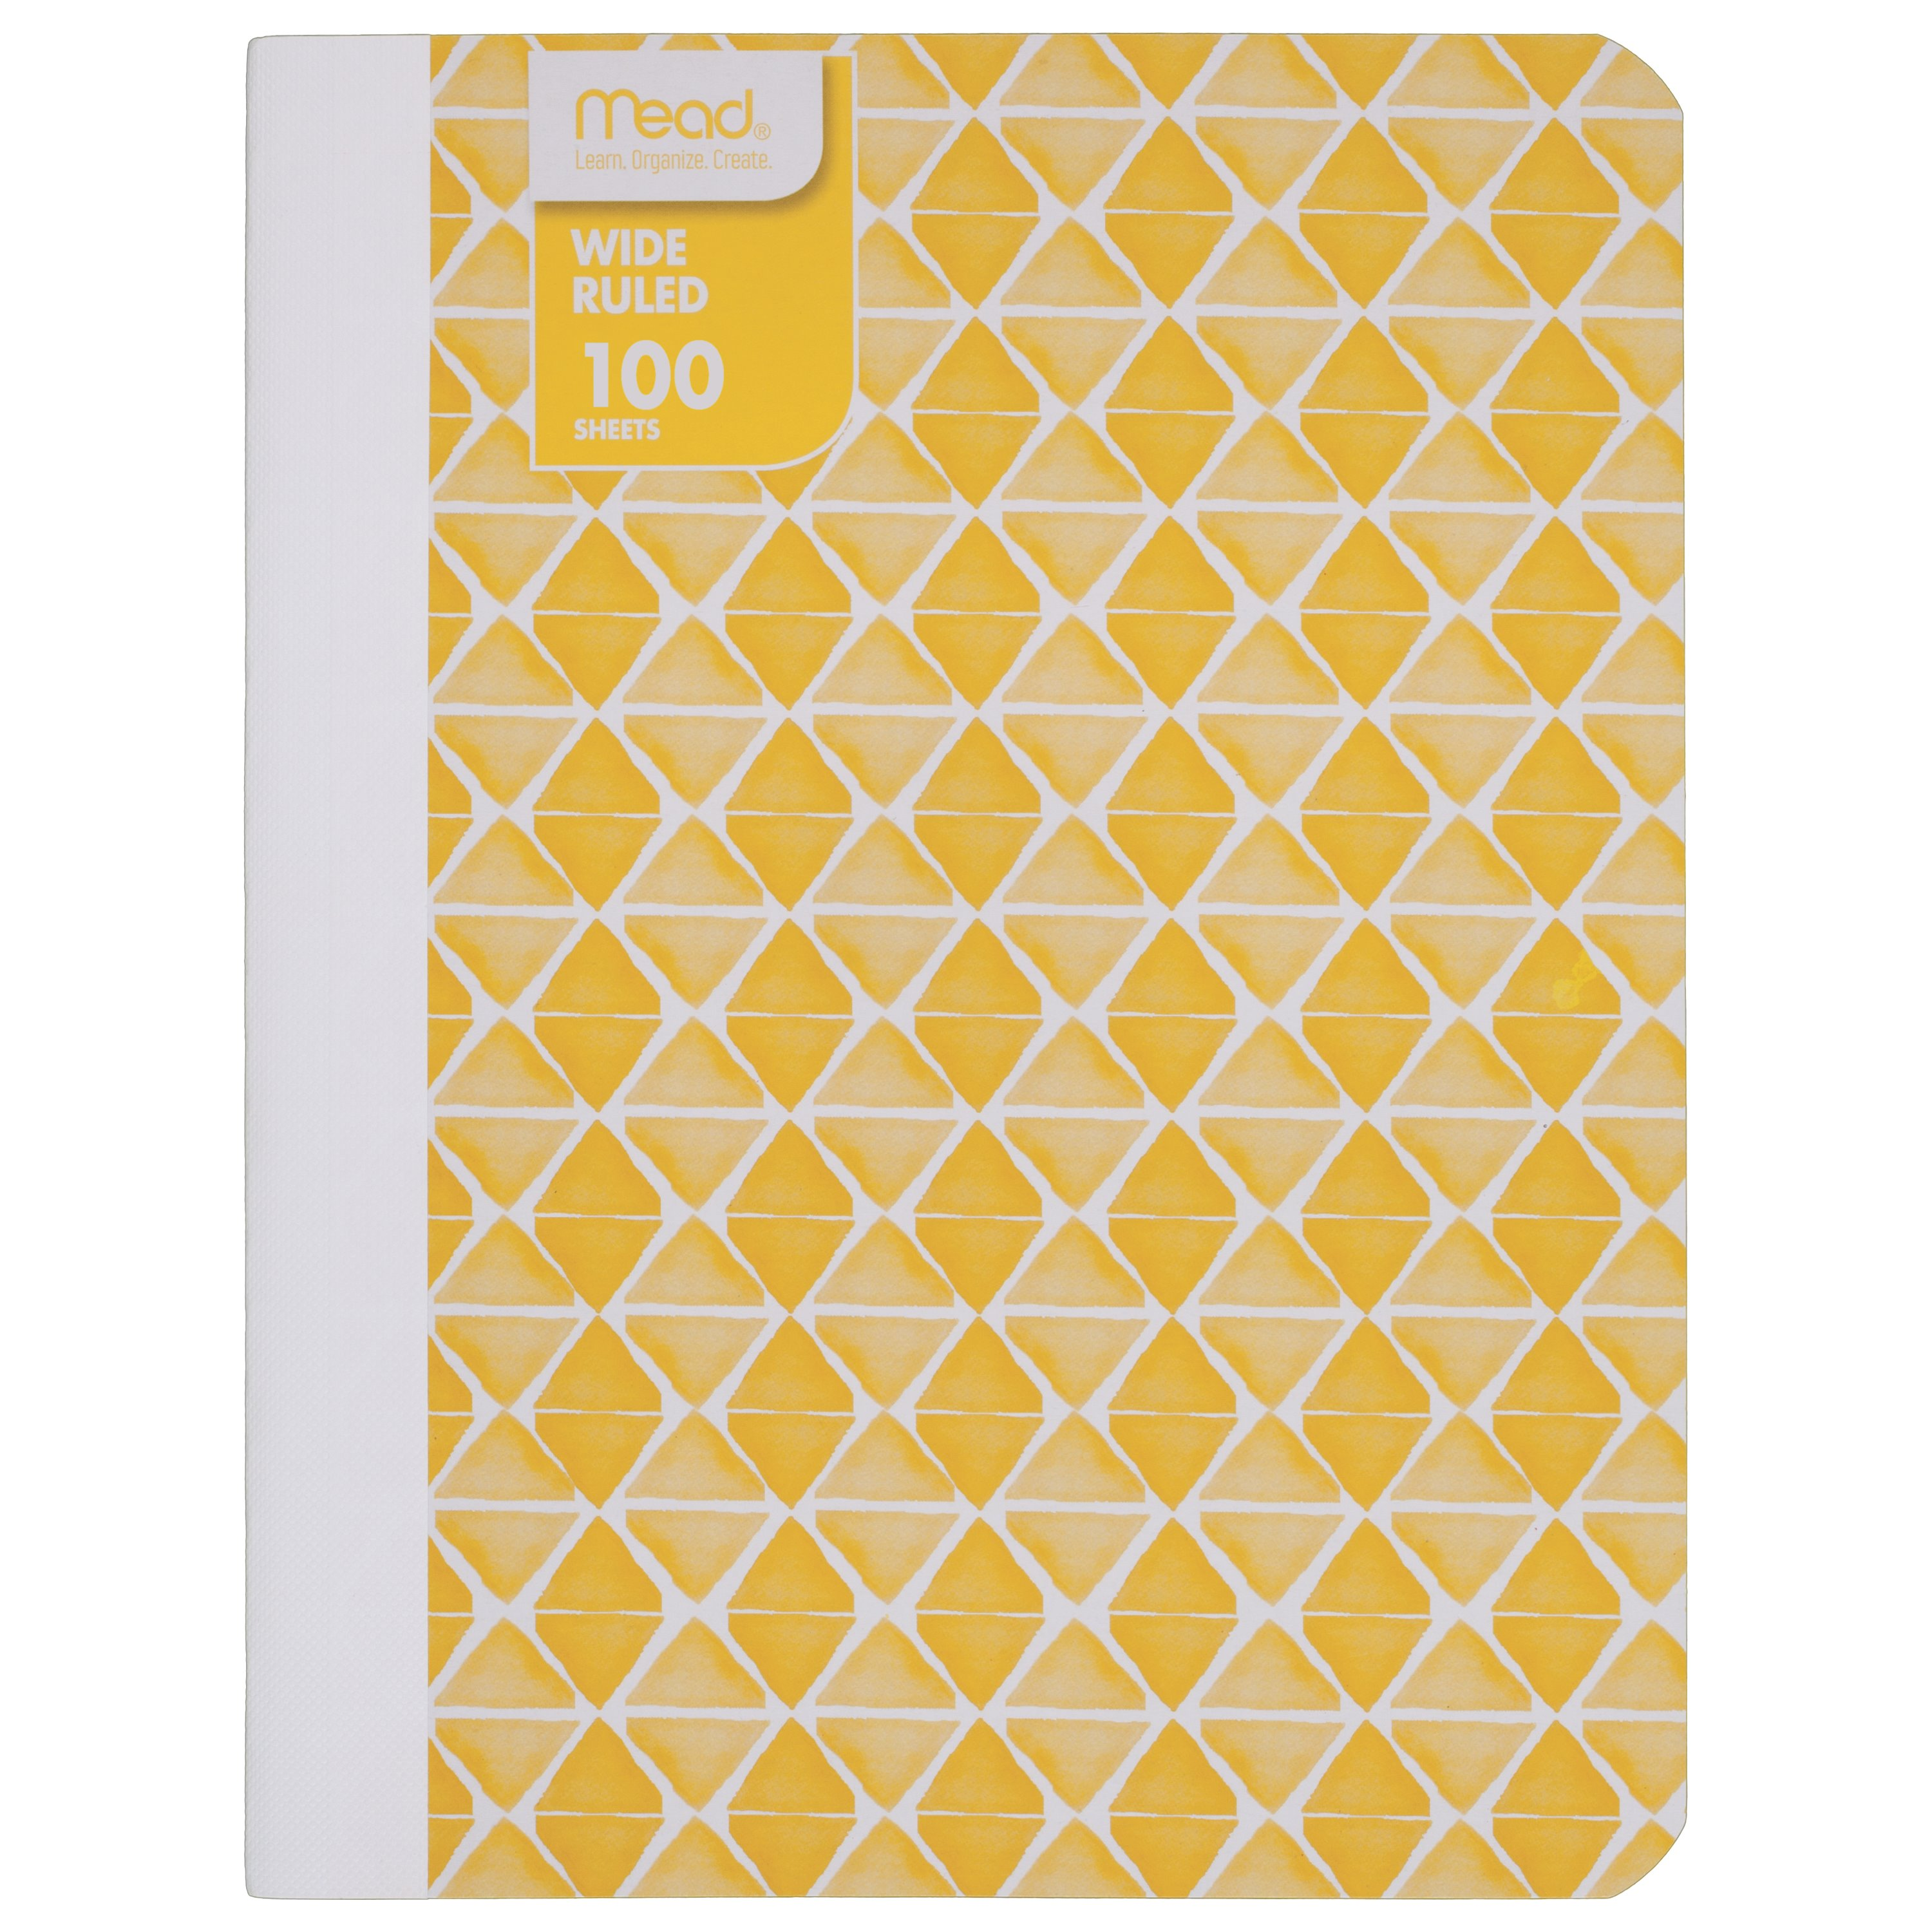 Mead® Fashion Composition Book, Wide Ruled, 100 Sheets,Colors May Vary